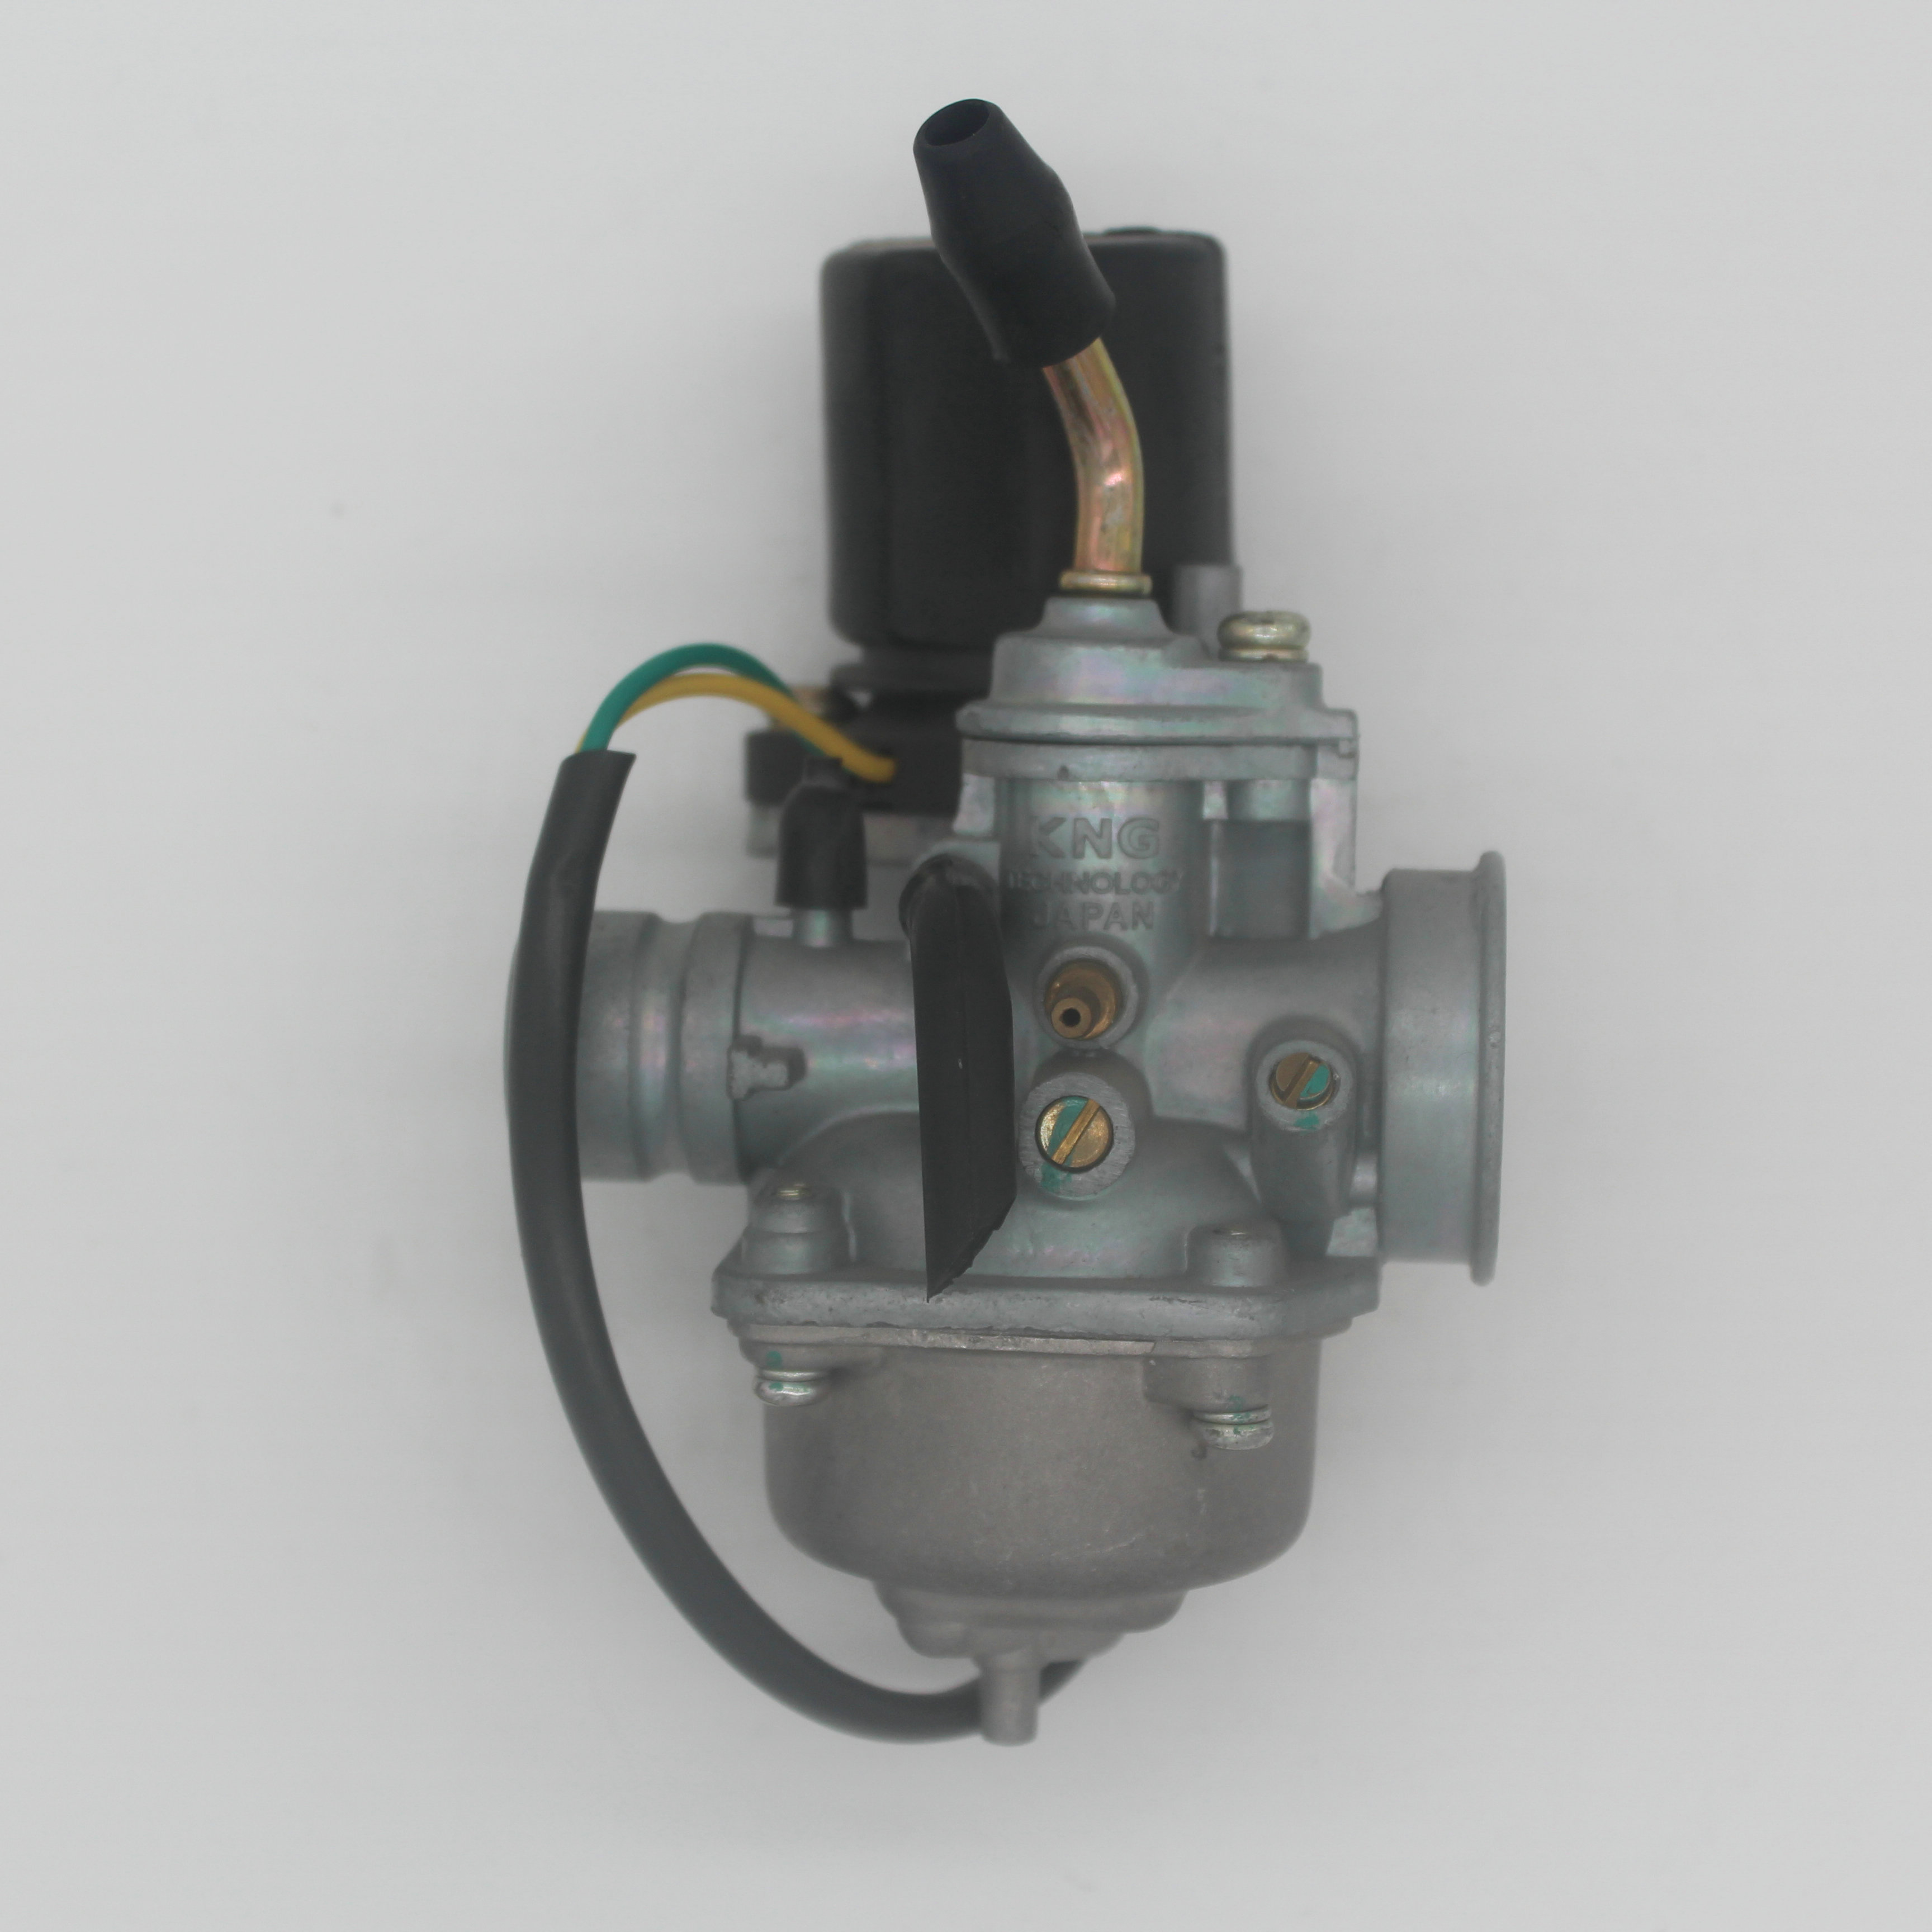 Motorcycle carburetor PZ19J 19mm for Minarelli 2 stroke 50cc 90cc scooter JOG JOG50 JOG90 1E40QMB 1PE40QMB 19mm carburetor for eton beamer aprilia sr50 jog zuma minarelli jog 50 90 50cc 90cc pz19j sr50 scooter atv buggy